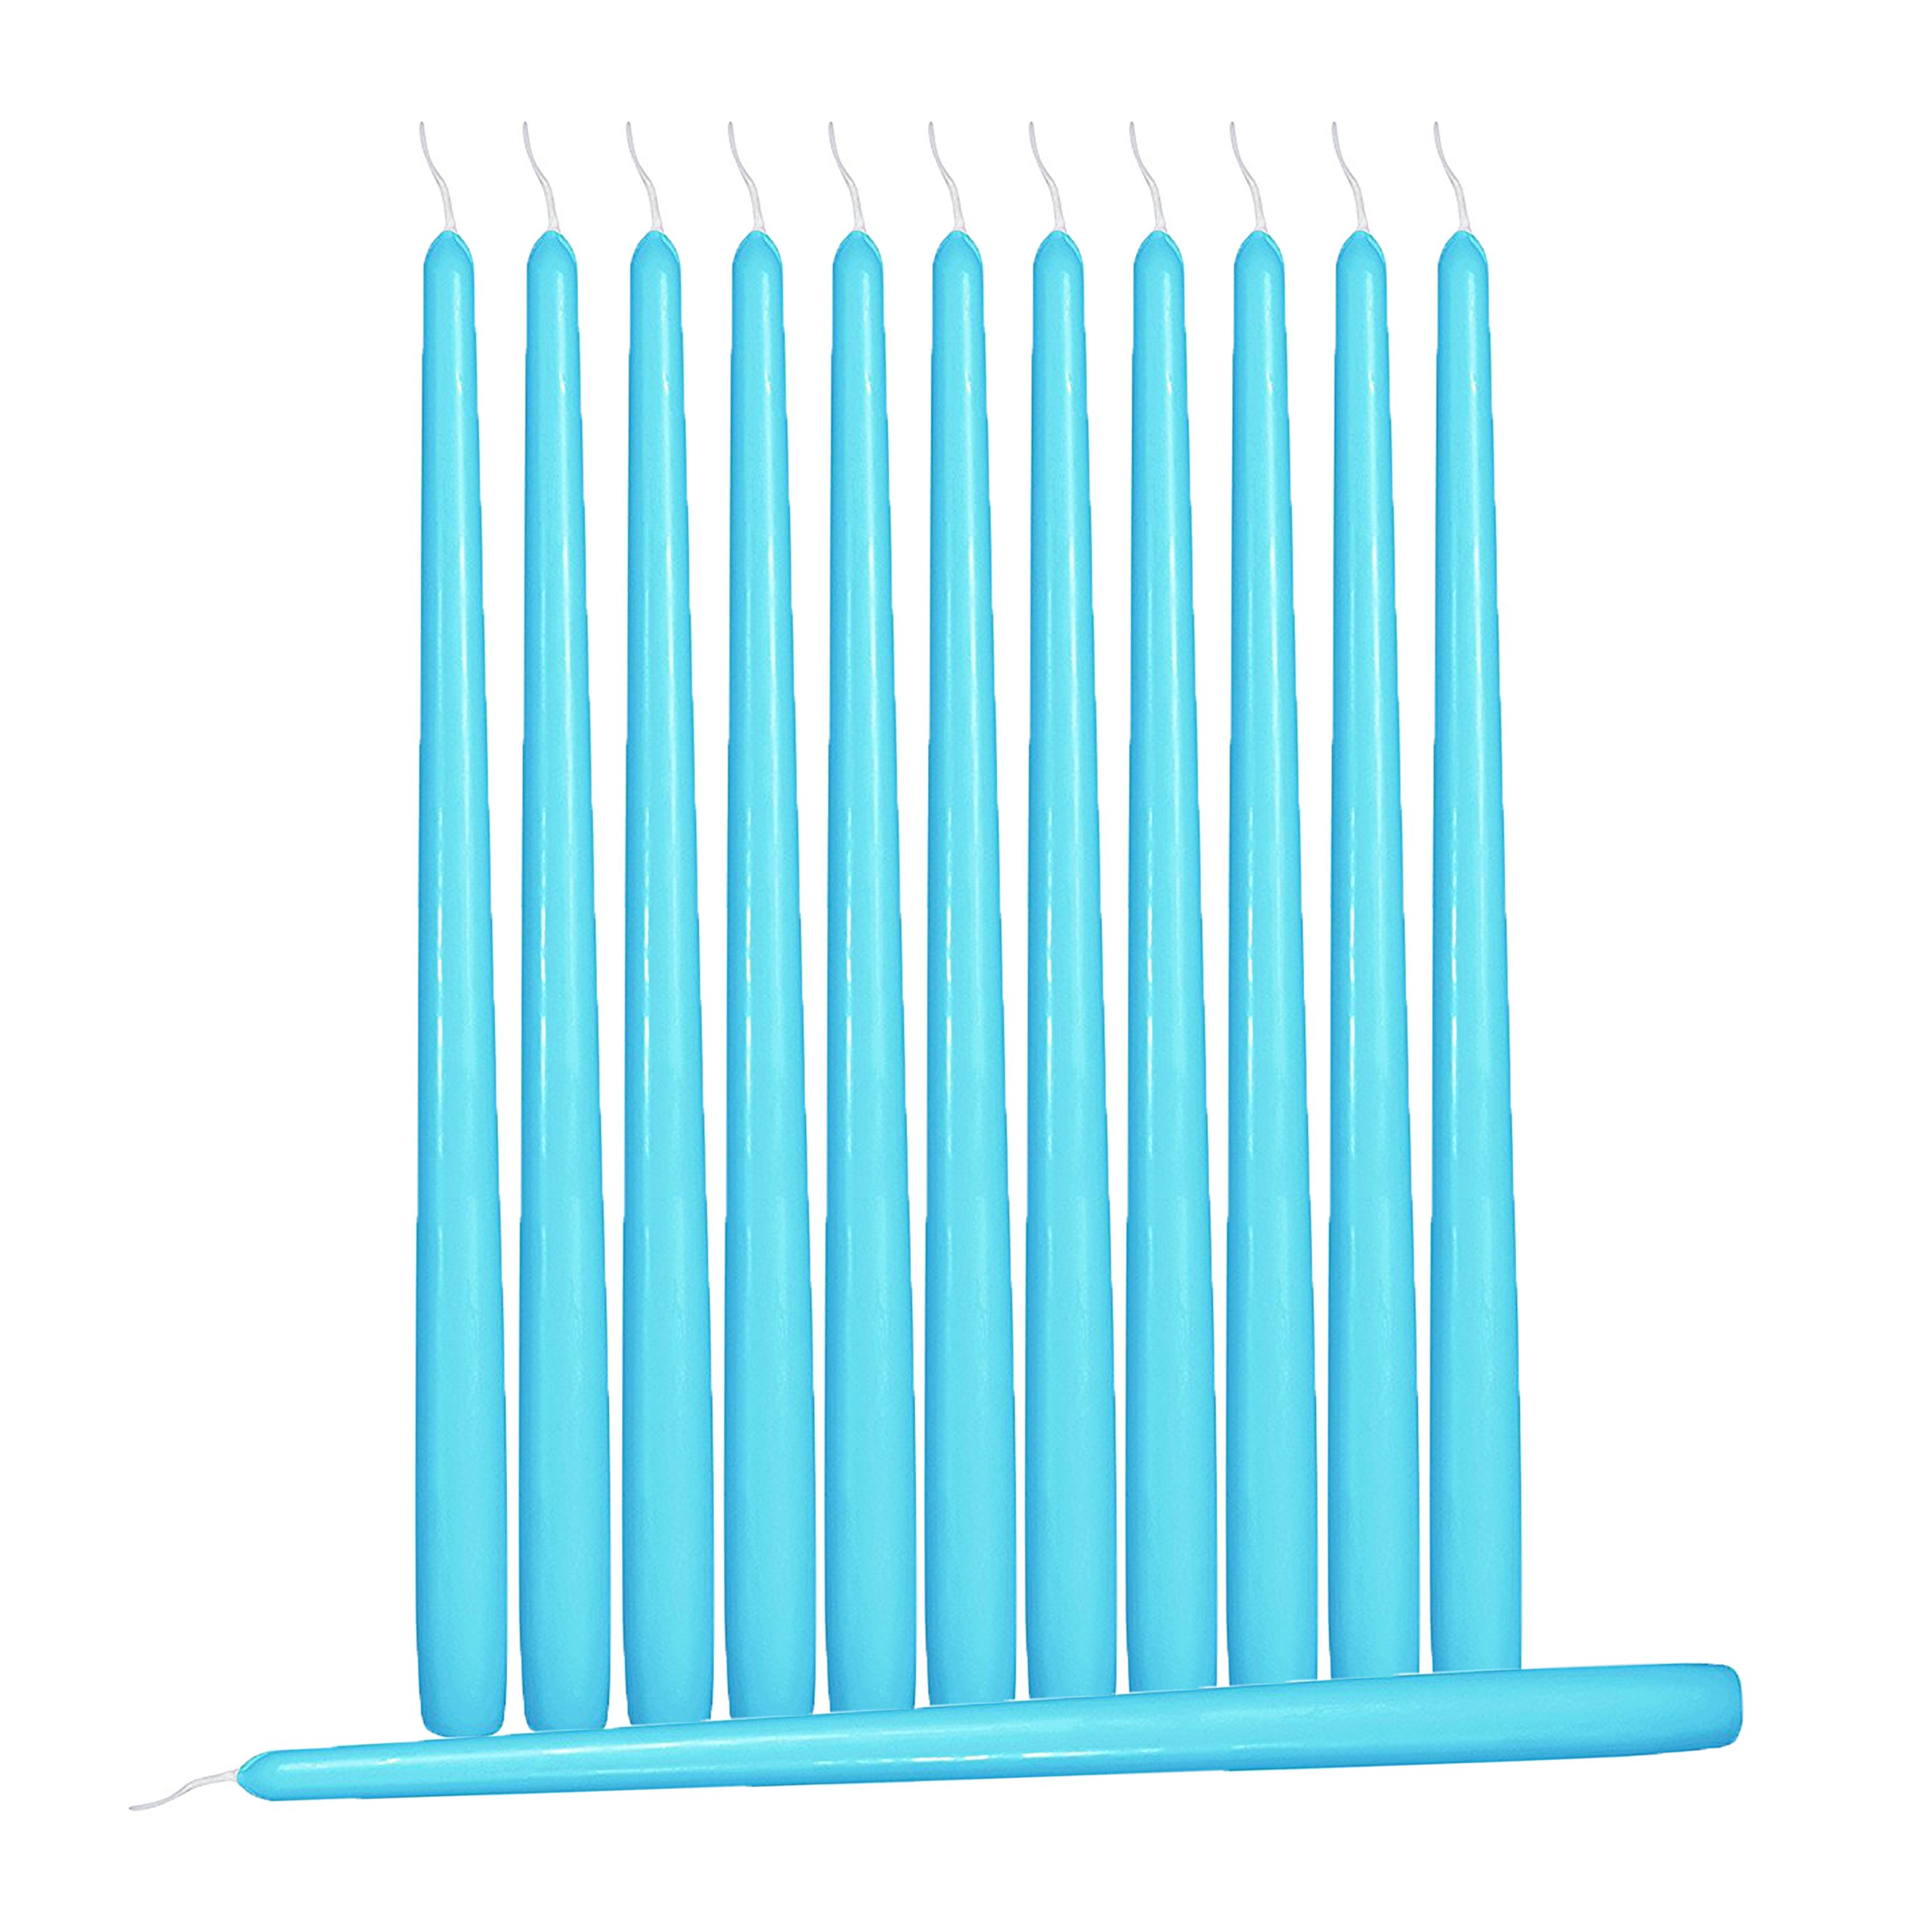 Hyoola 12 Pack Tall Taper Candles - 10 Inch Turquoise Dripless, Unscented Dinner Candle - Paraffin Wax with Cotton Wicks - 8 Hour Burn Time by Hyoola